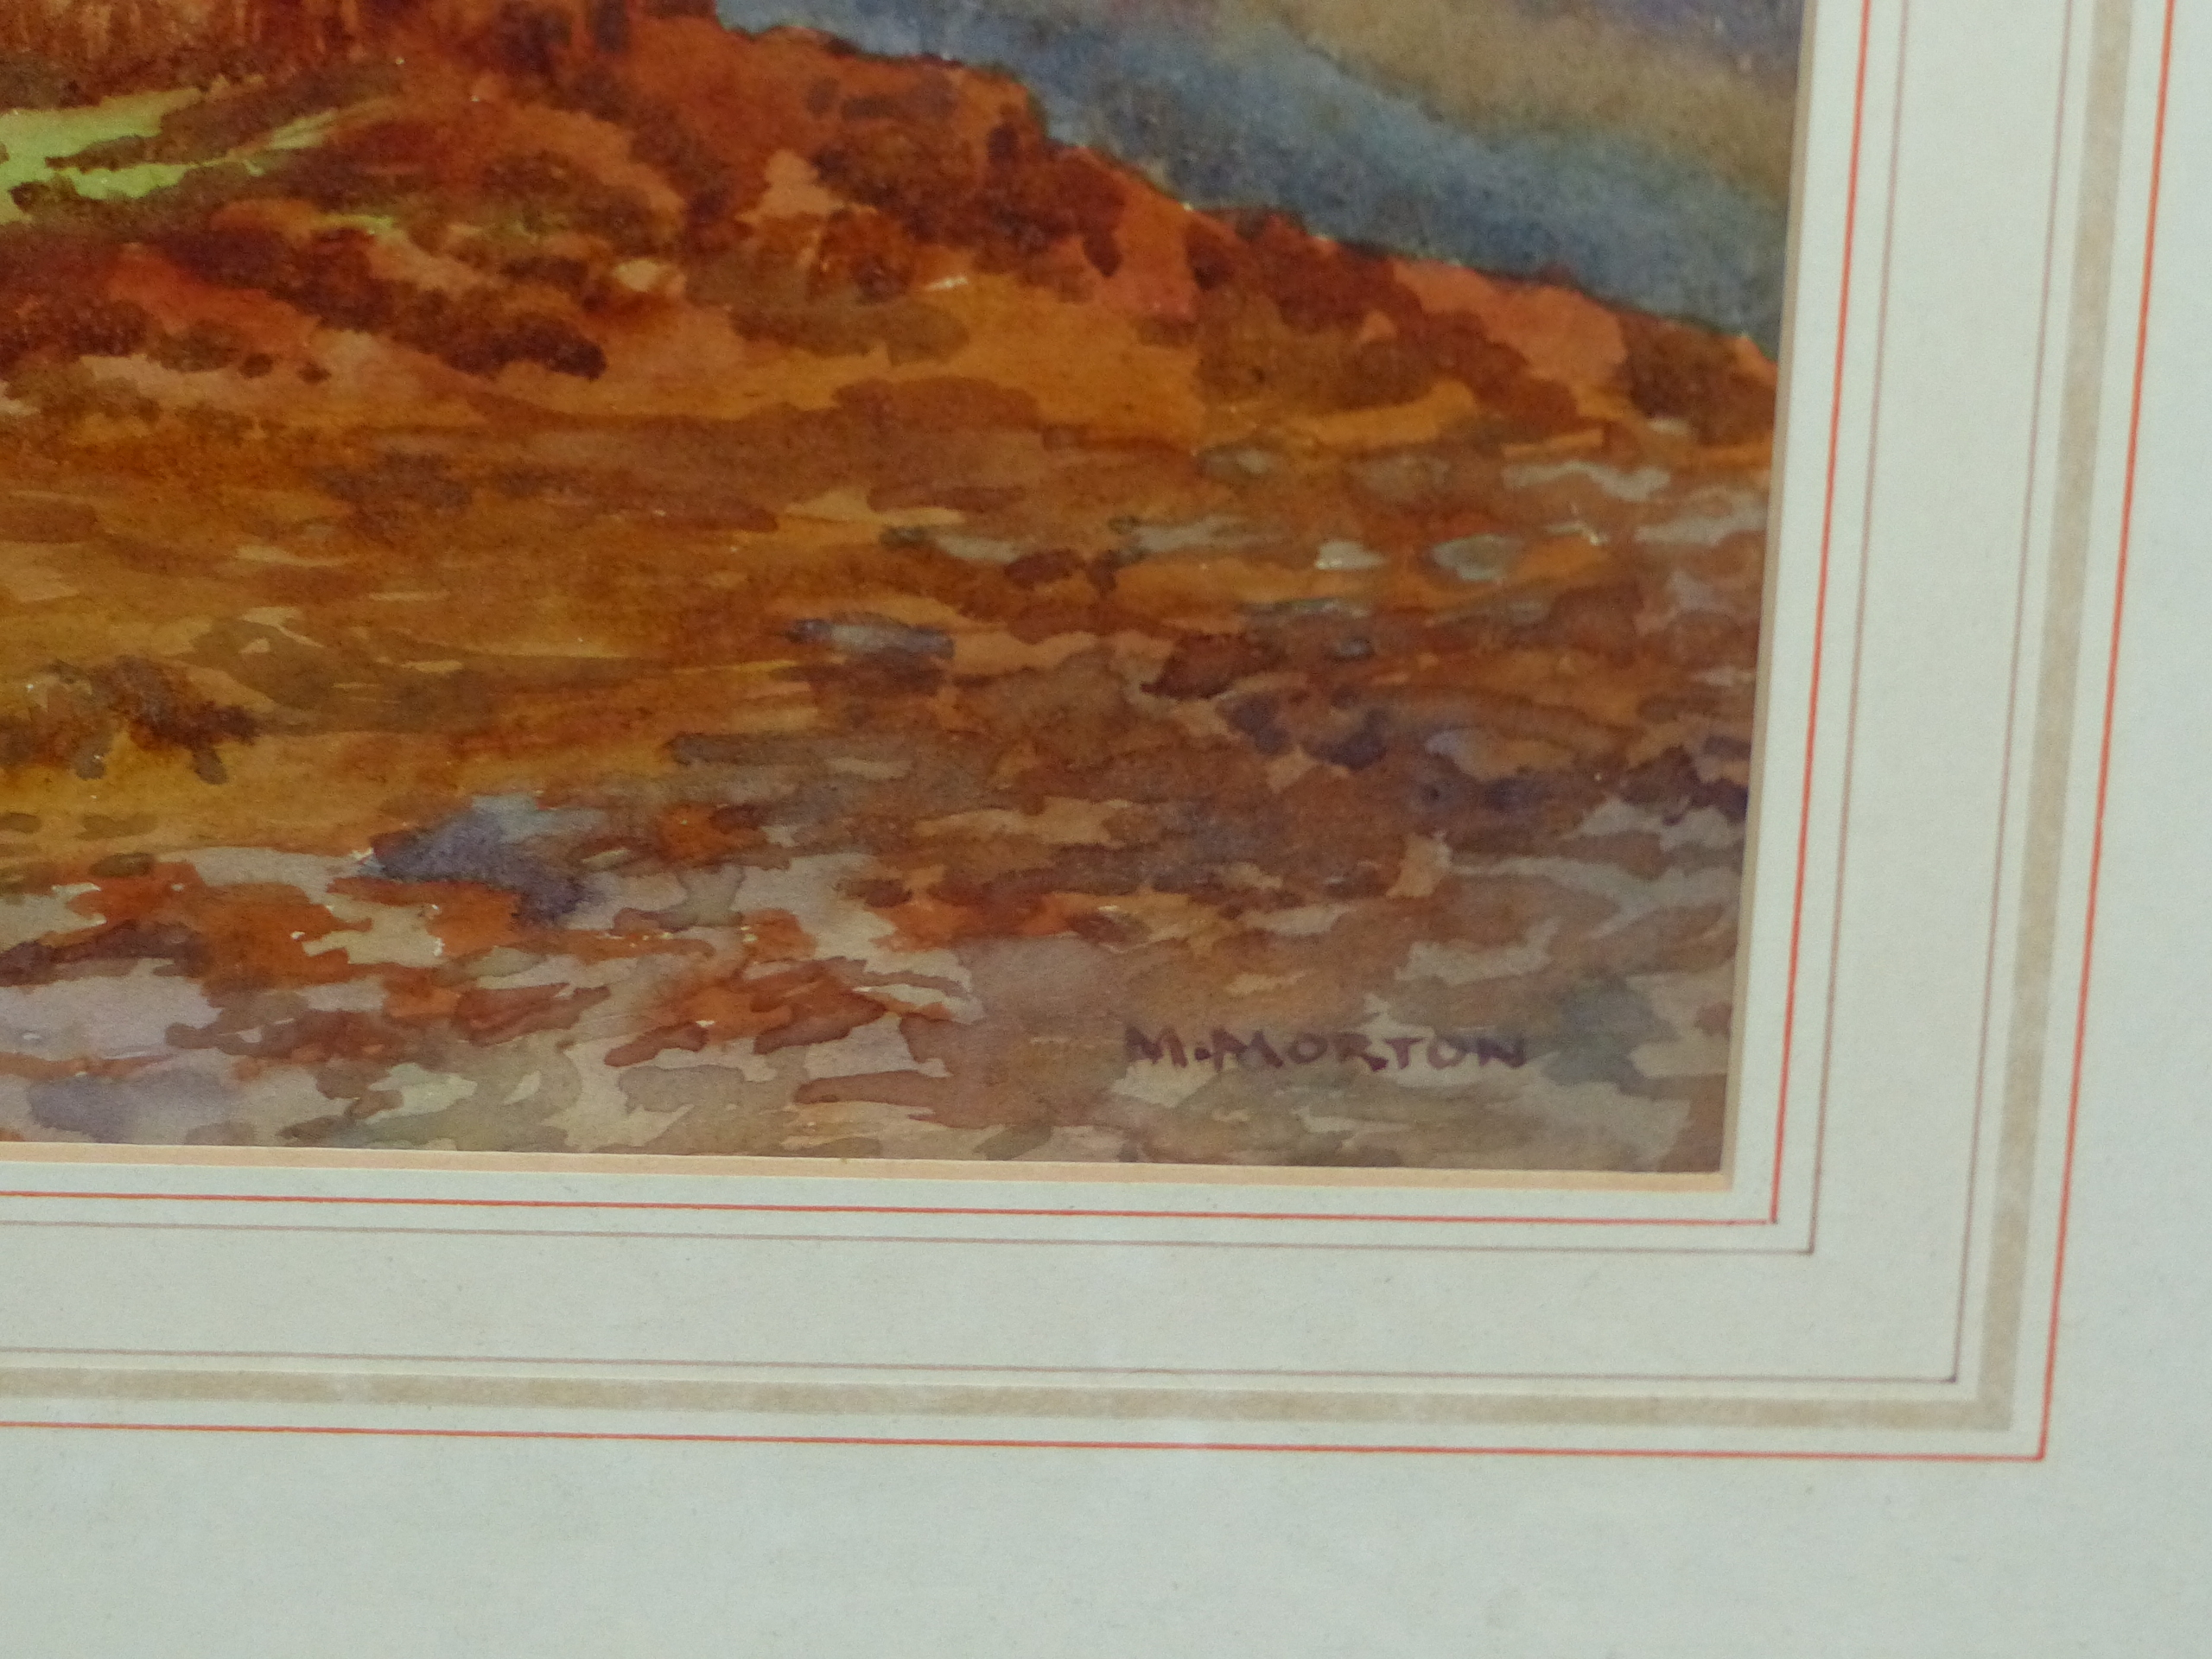 MARY MORTON (EARLY 20th C. ENGLISH SCHOOL) A HIGHLAND LAKE VIEW, SIGNED WATERCOLOUR. 24 x 35cms - Image 5 of 7